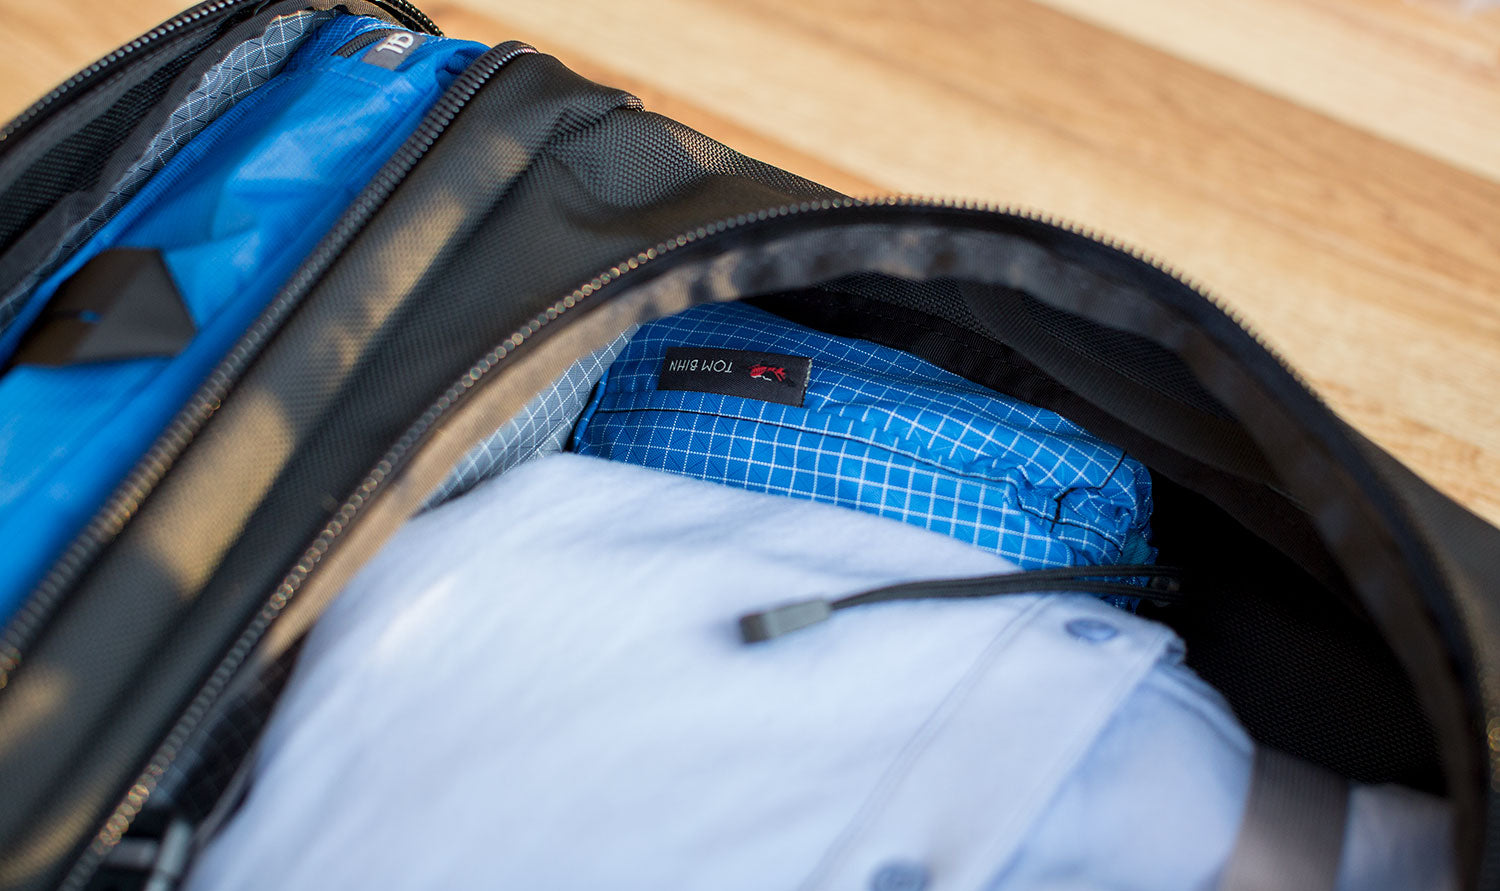 Travel Stuff Sacks make use of nooks and crannies of space in your bag